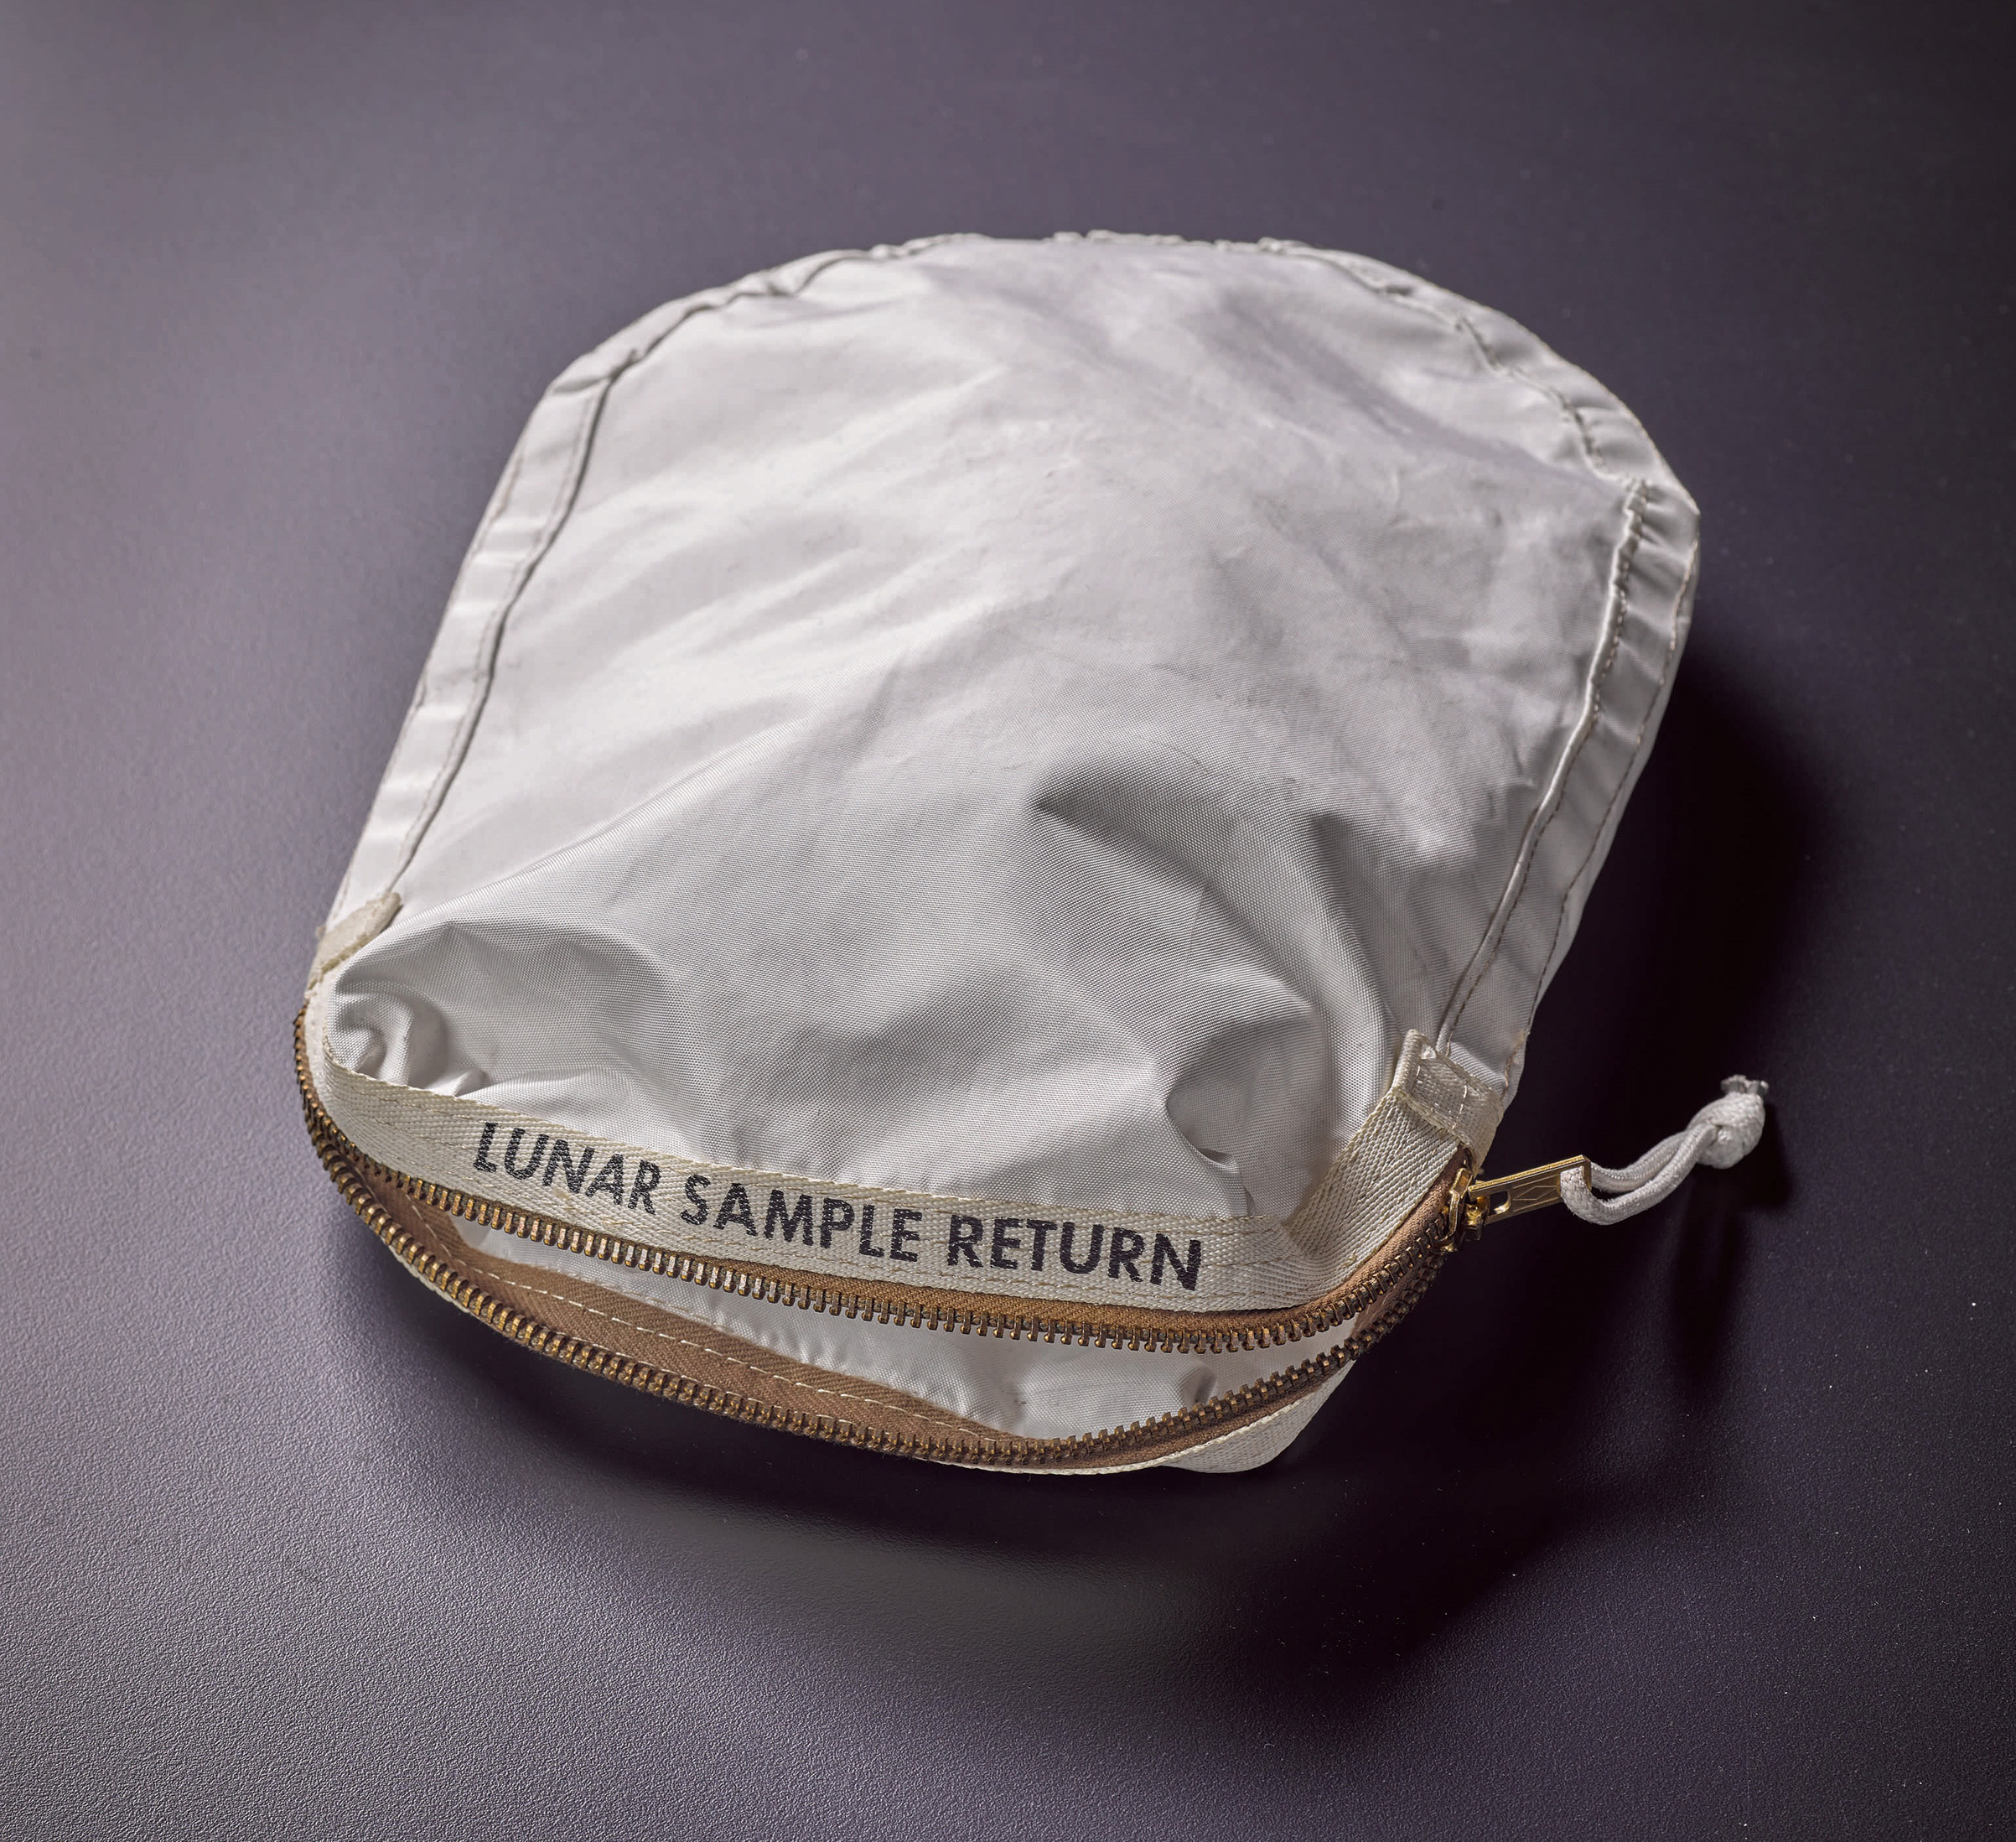 Apollo 11 Contingency Lunar Sample Return Bag. Used by Neil Armstrong on Apollo 11 to bring back the very first pieces of the moon ever collected, traces of which remain in the bag.